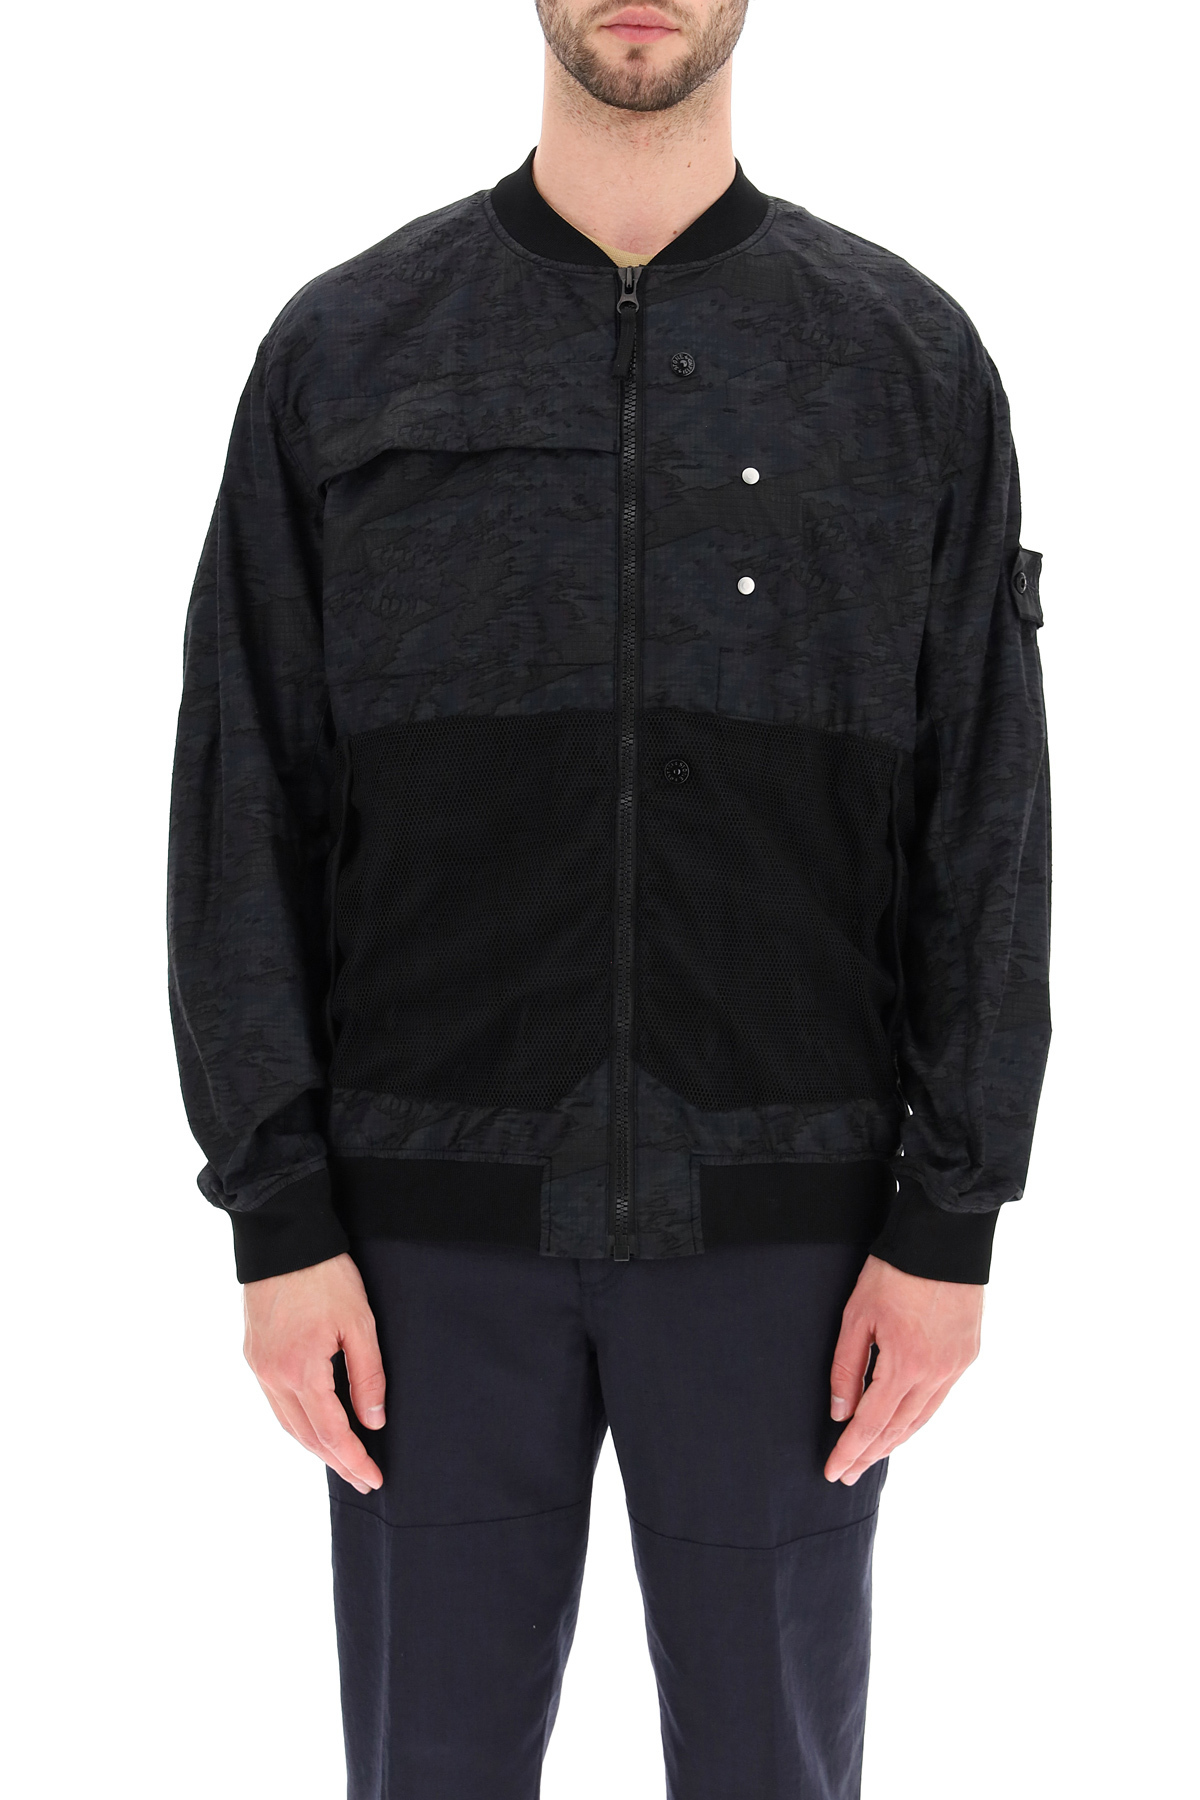 Stone island shadow project bomber in dpm ripstop devore'